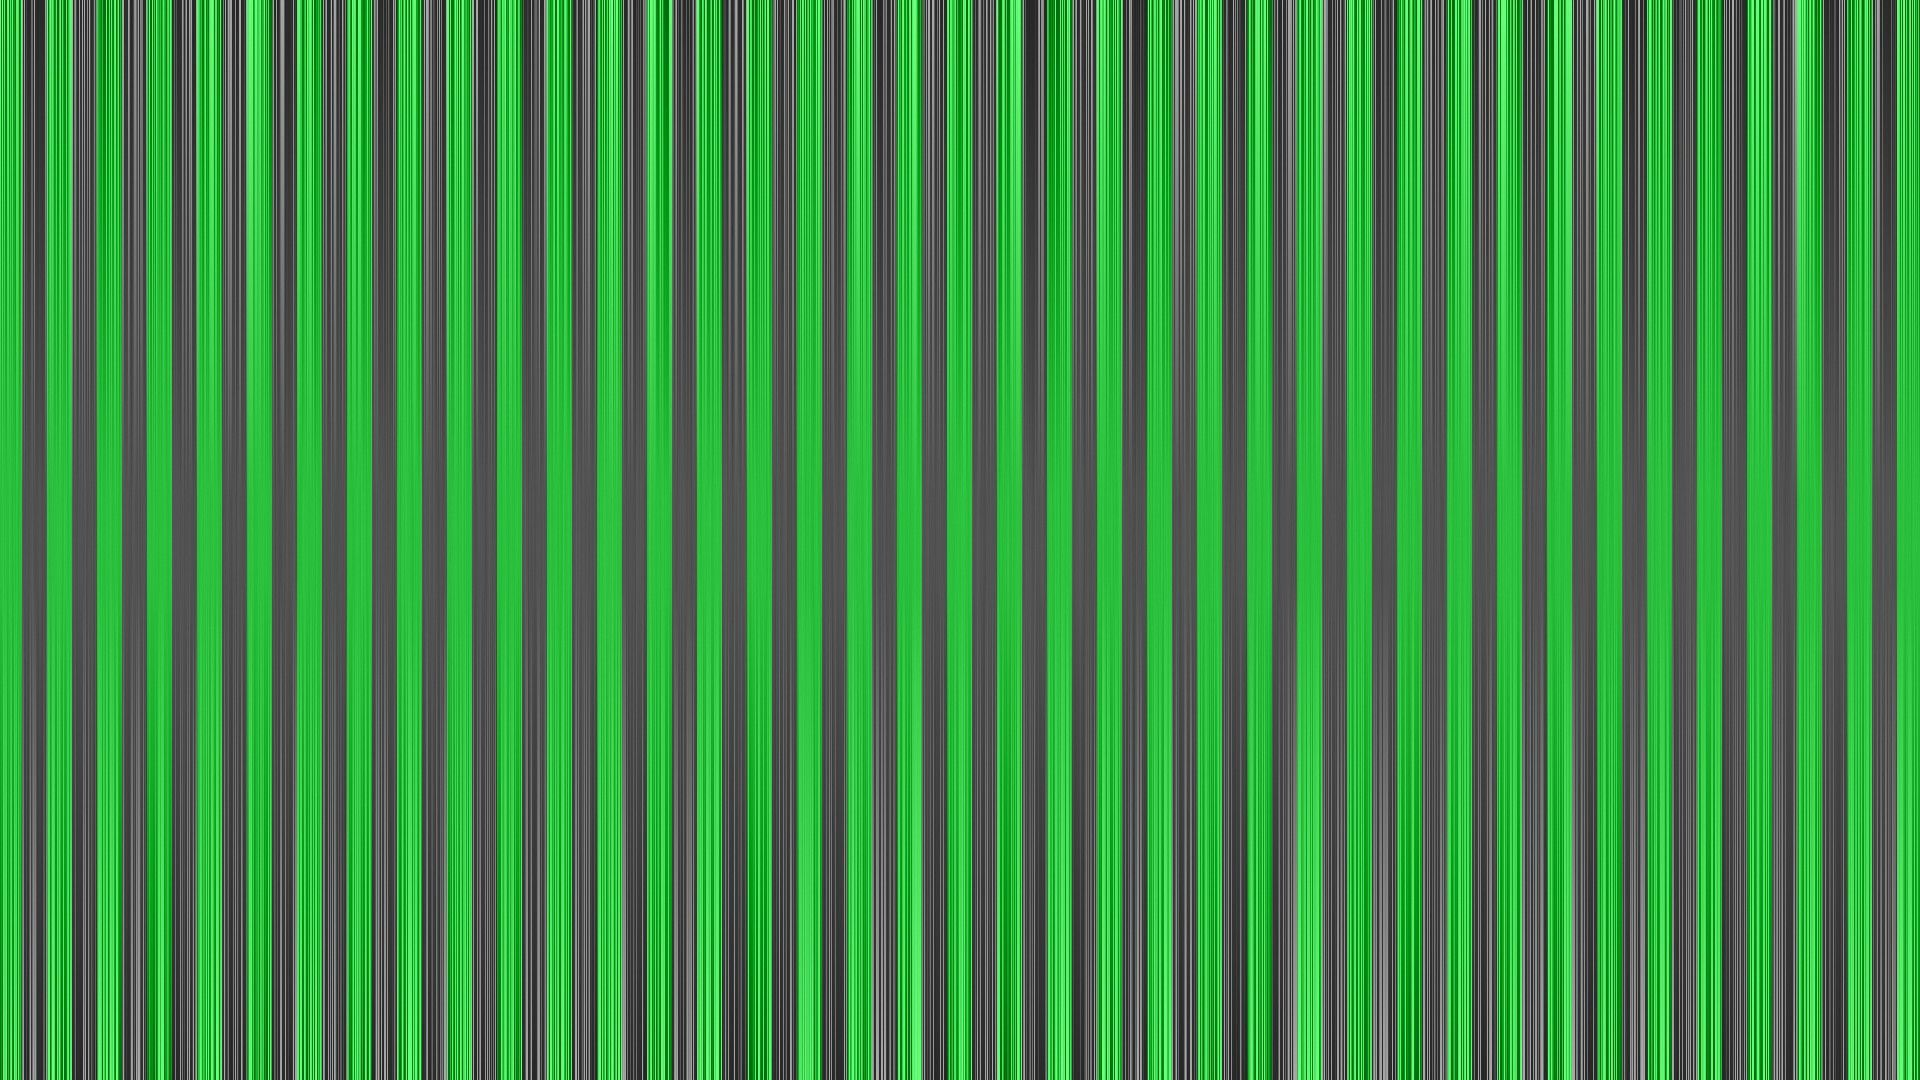 138294 download wallpaper Abstract, Lines, Stripes, Streaks, Vertical screensavers and pictures for free